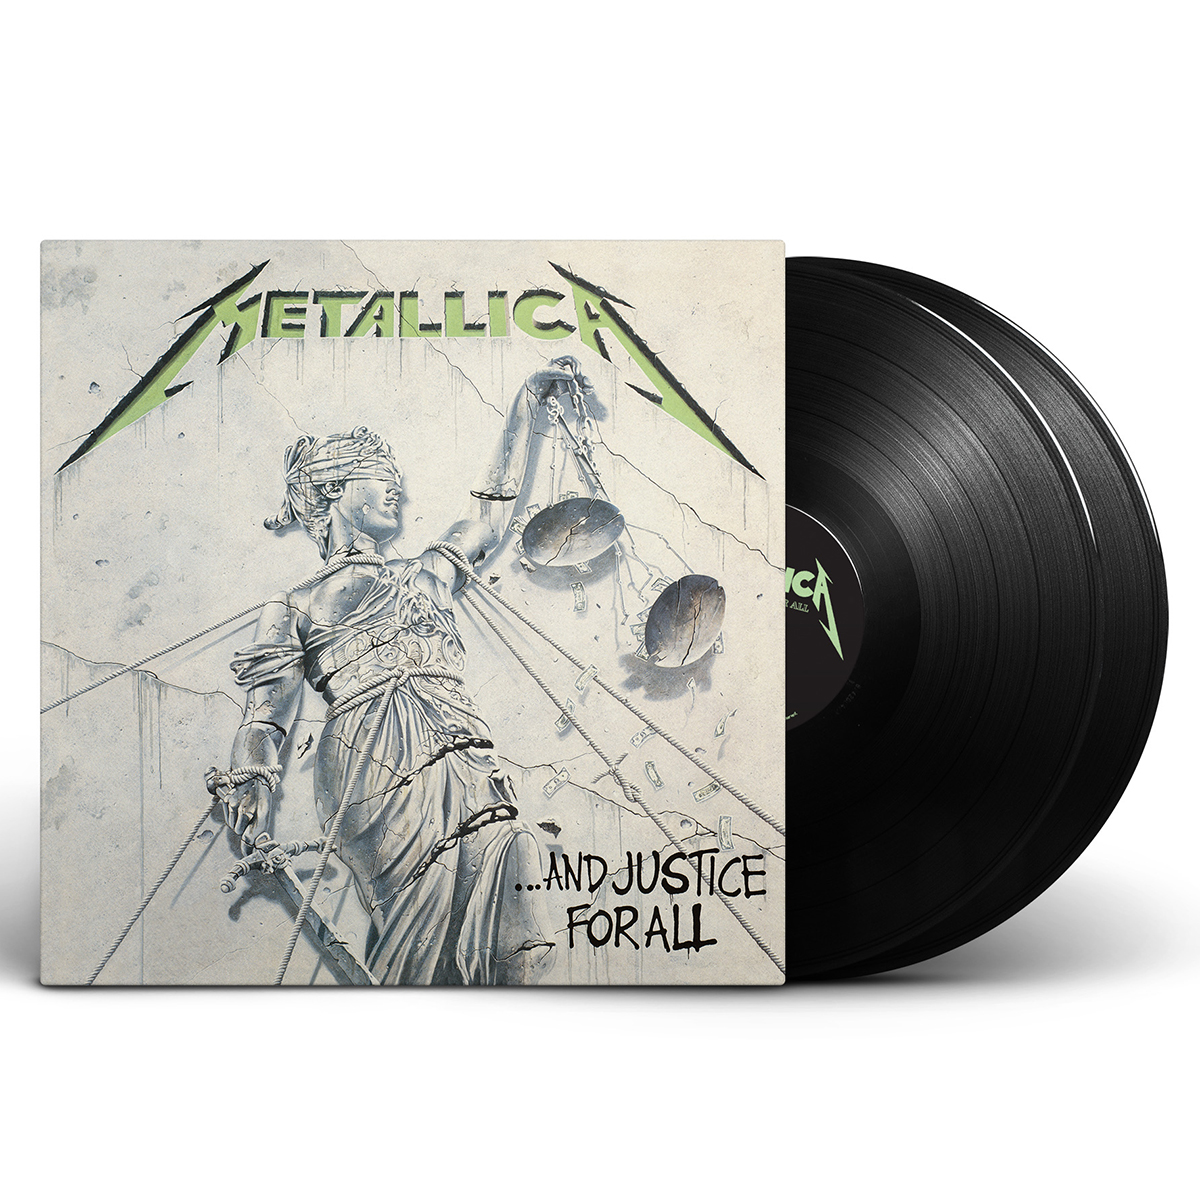 …And Justice For All (Re-Mastered) – 2LP Set - Metallica